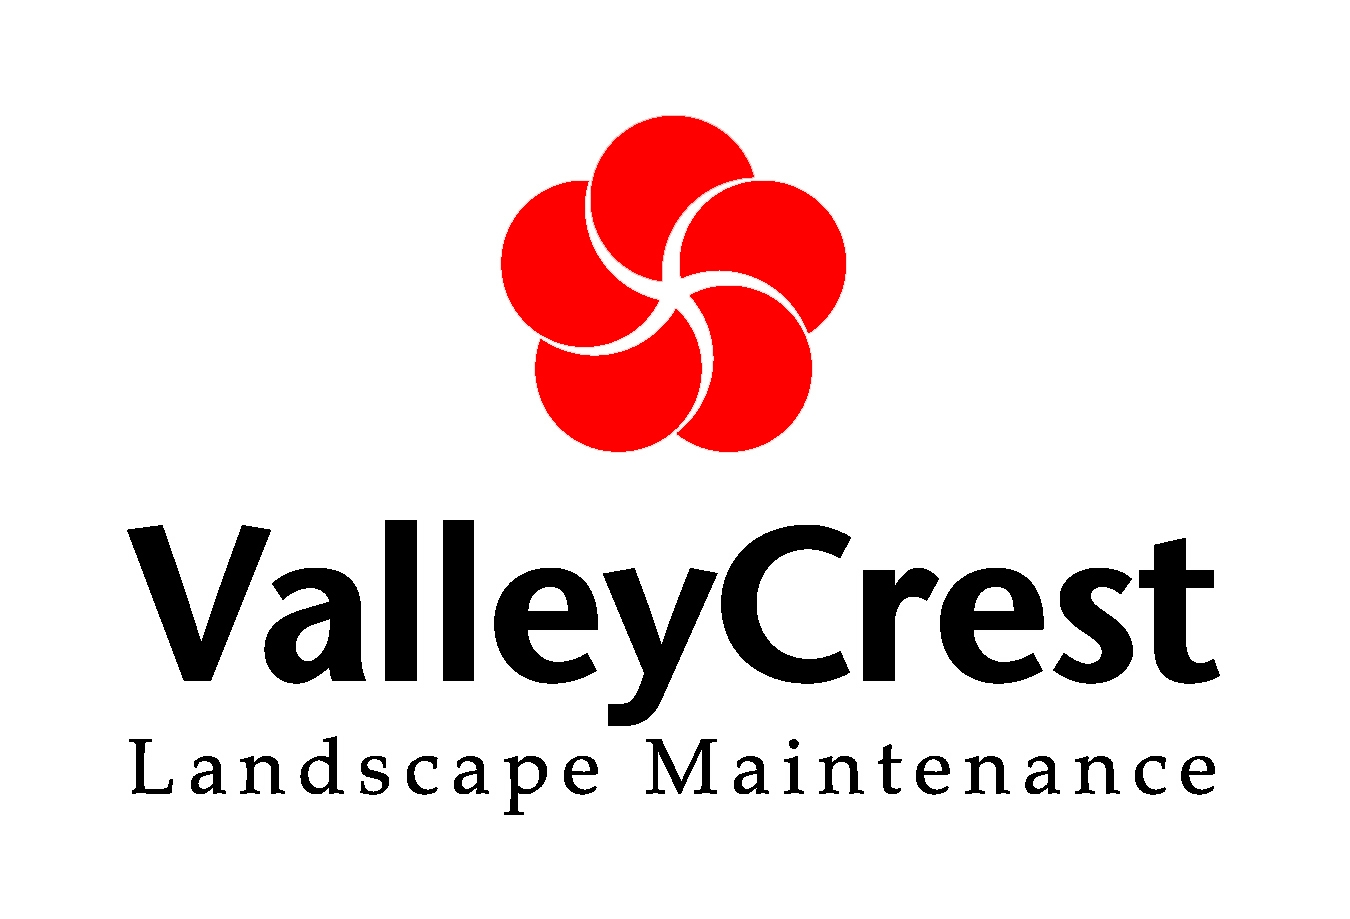 ValleyCrest-Maintenance-logo.jpg